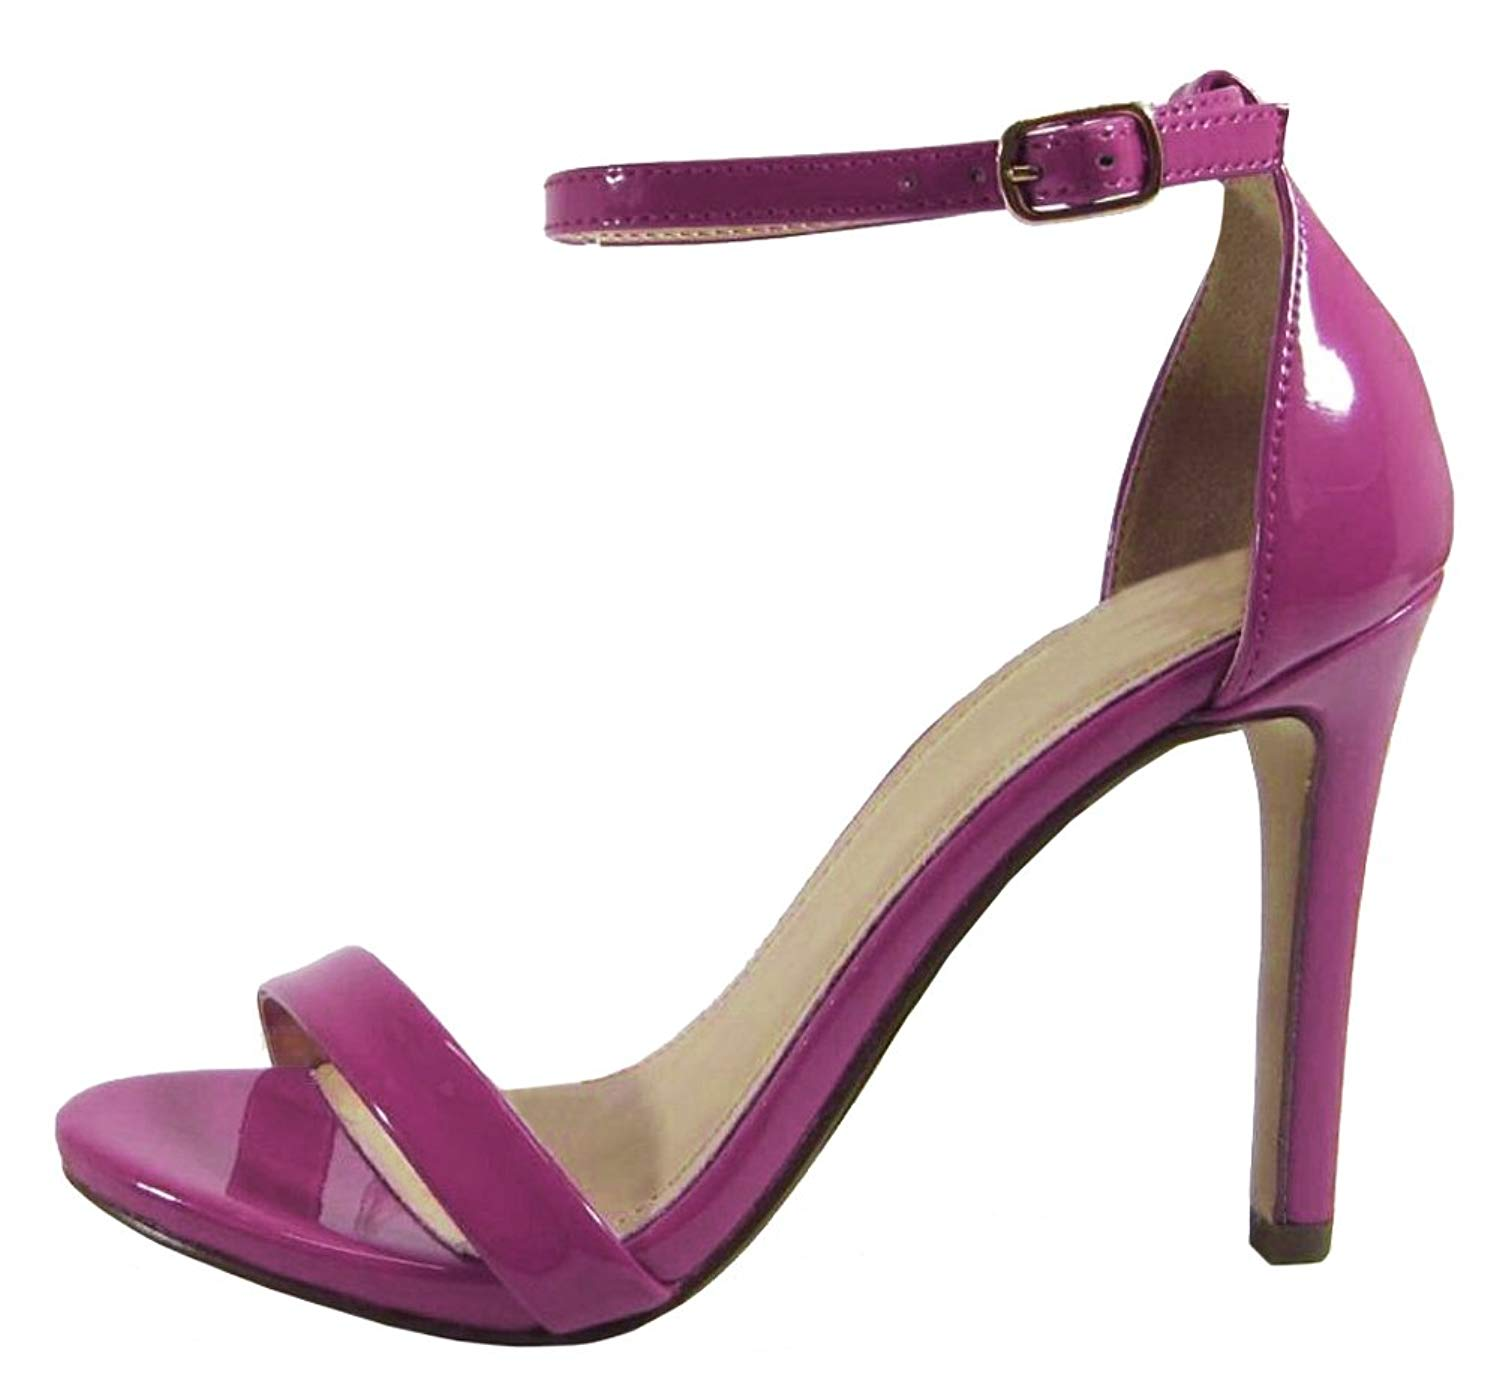 71f5cf9e3c60 Get Quotations · Cambridge Select Women s Open Toe Single Band Buckled  Ankle Strap Single Band Buckled Ankle Strap Stiletto